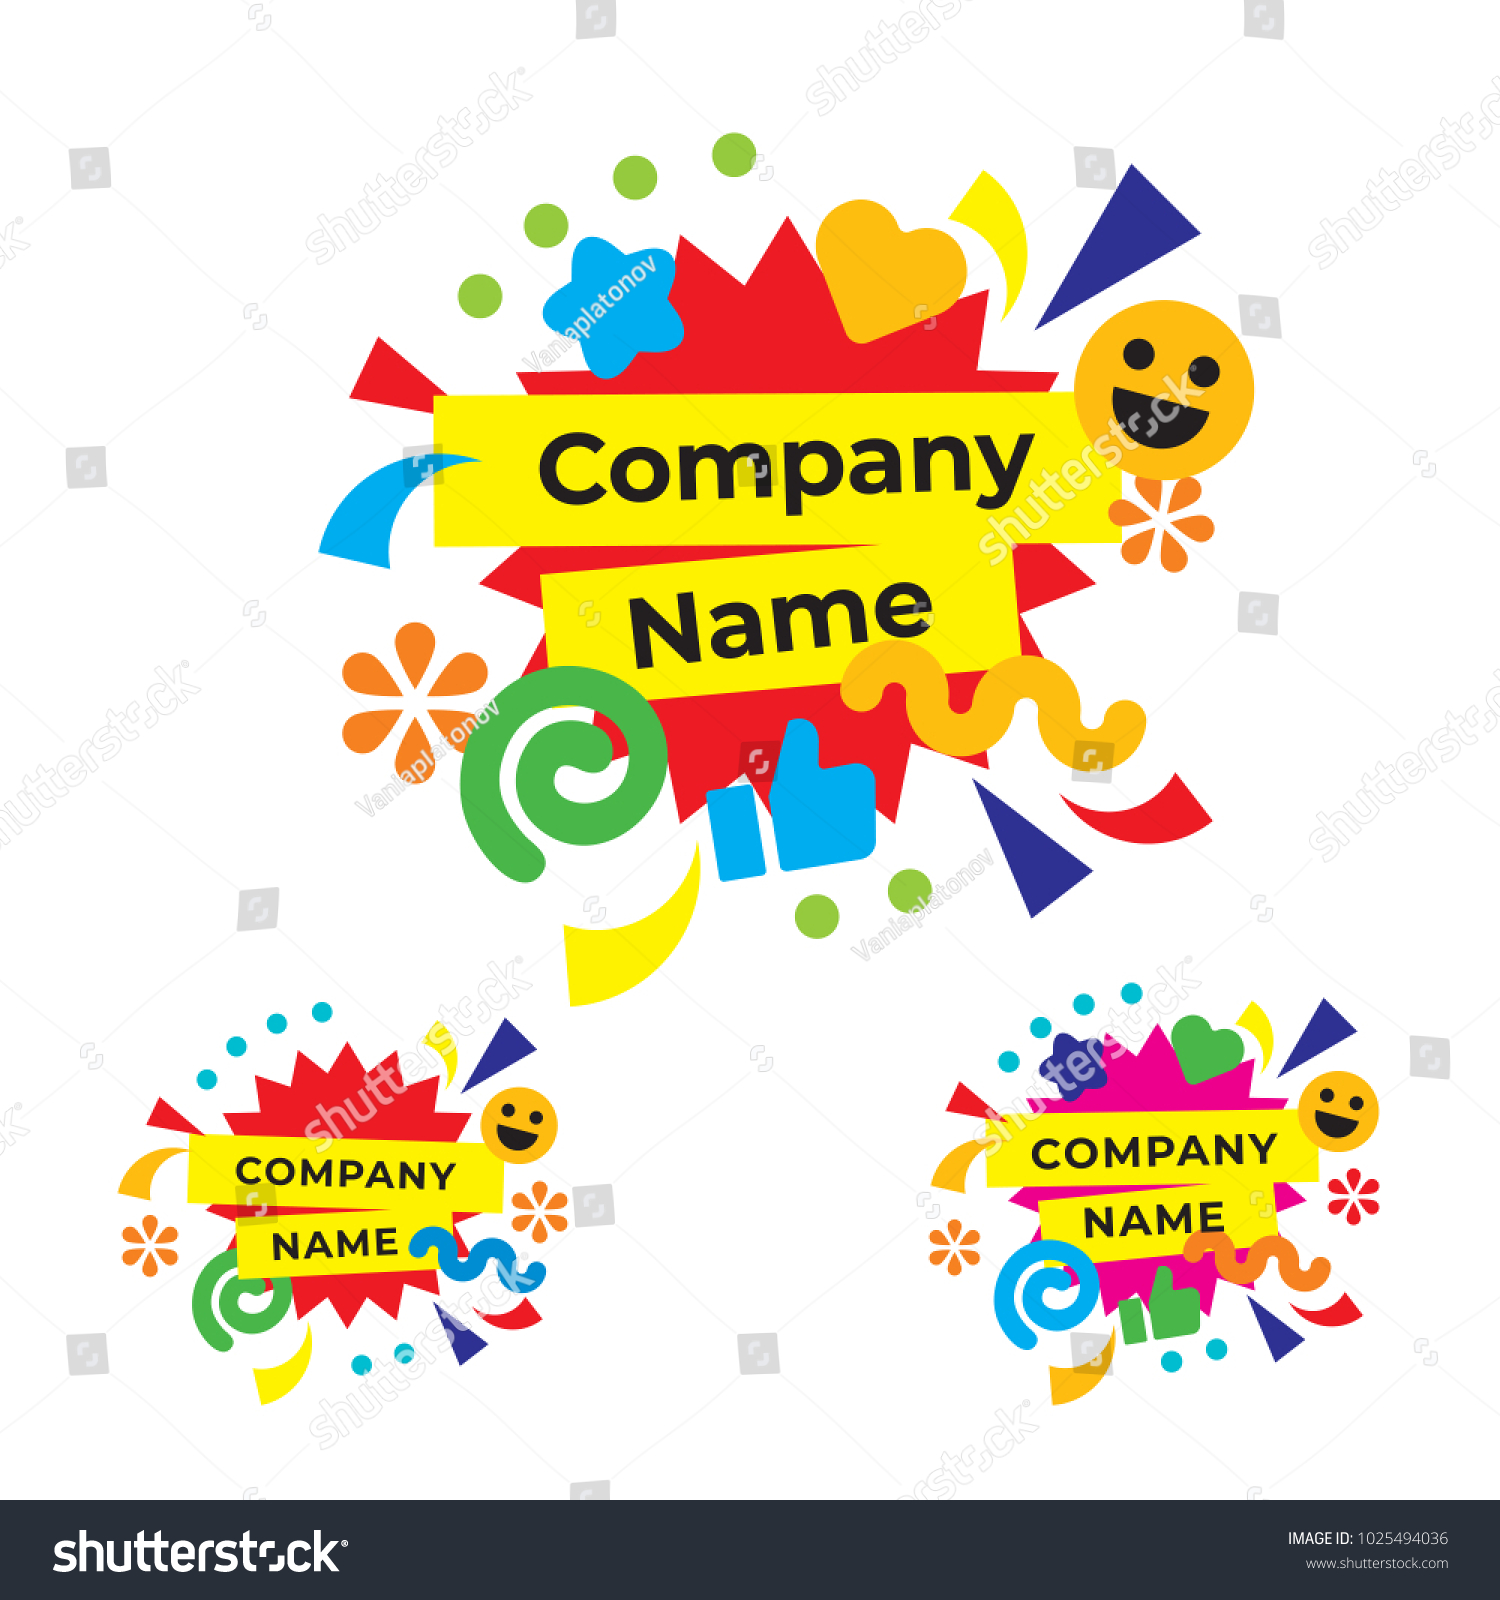 funny happy party logo modern holiday stock vector royalty free 1025494036 https www shutterstock com image vector funny happy party logo modern holiday 1025494036